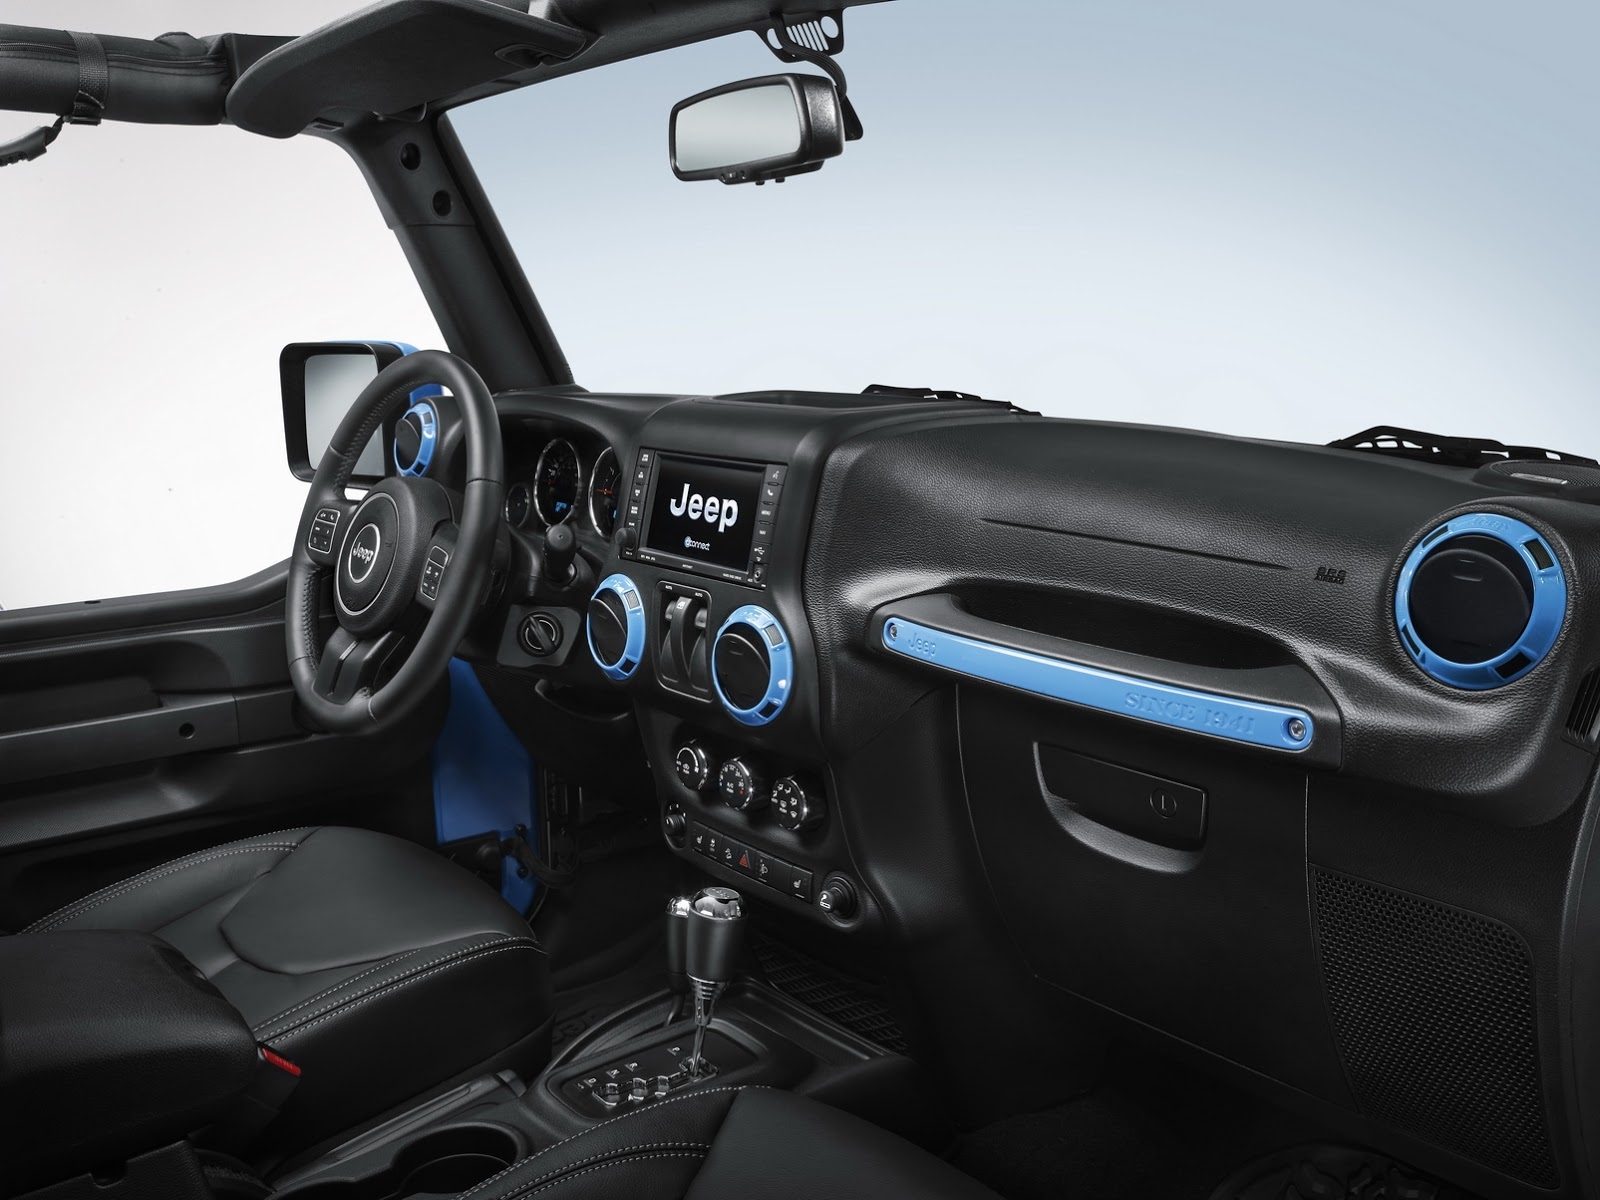 Jeep Wrangler Rubicon With Mopar Accessories Arrives In